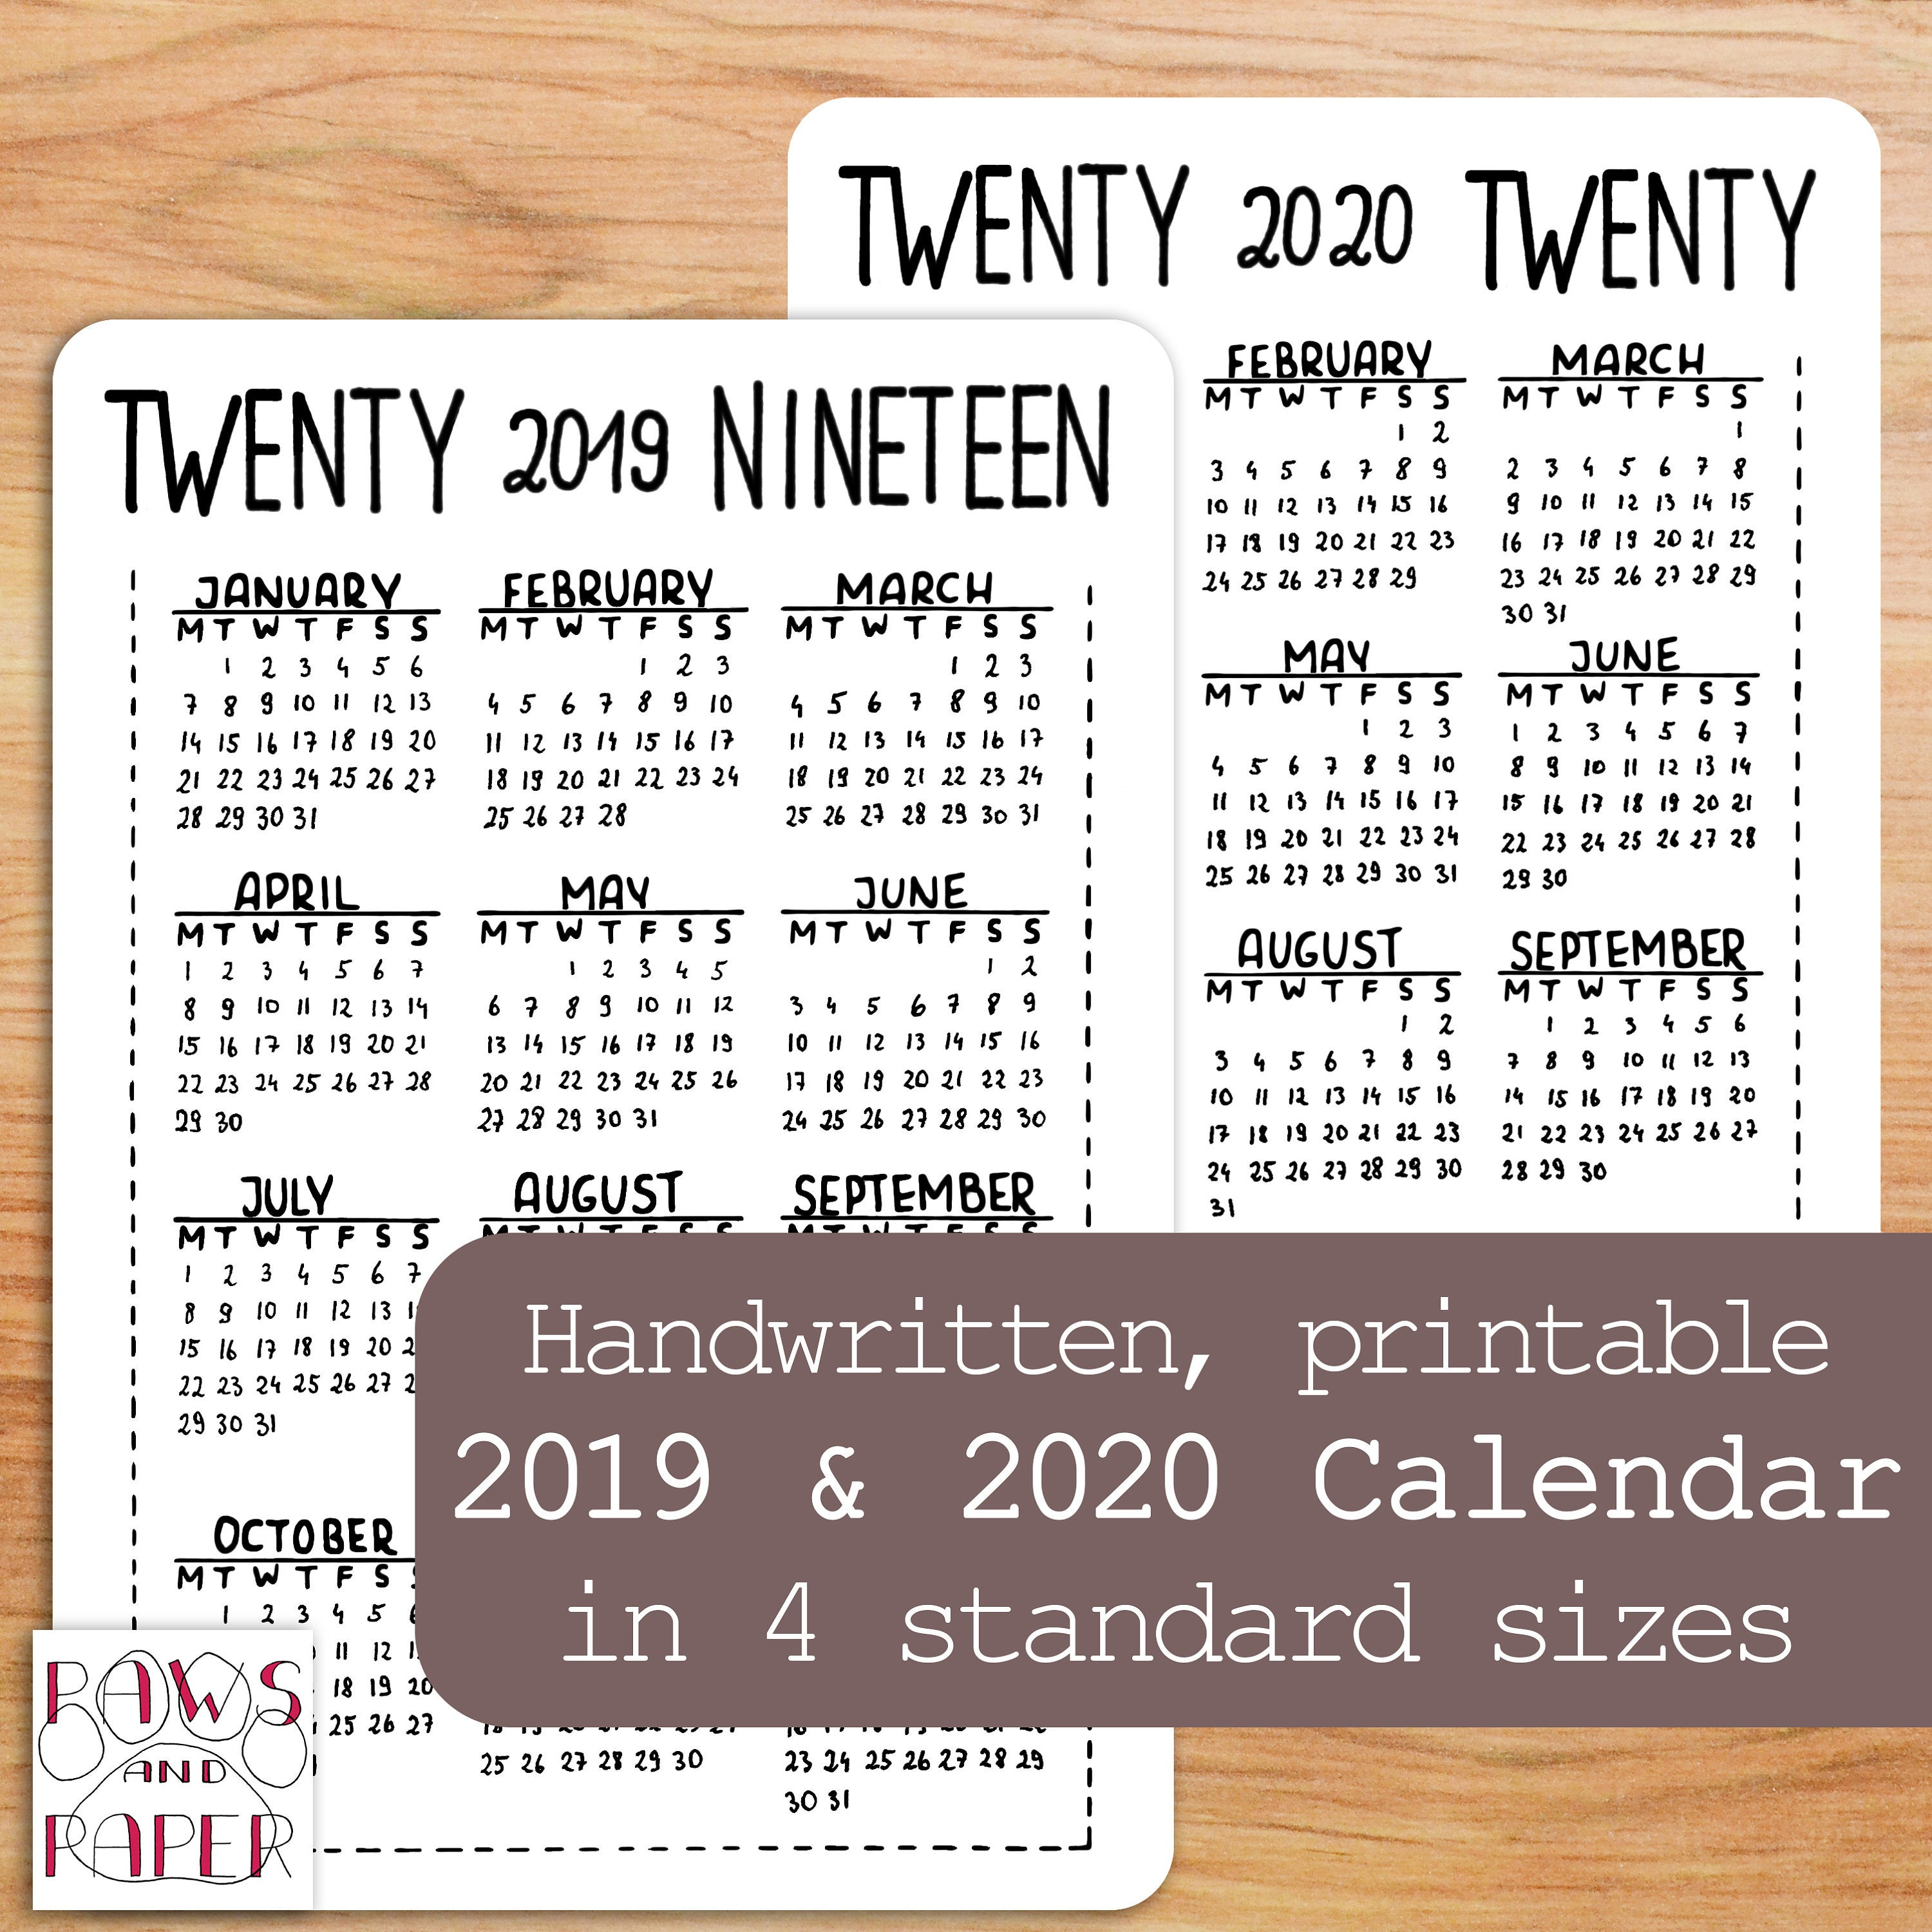 2019 2020 Printable Calendar, Year At A Glance, Planner, Bullet Journal  Kit, Planner Inserts, 2019 2020 Planner, Handwritten, 4 Sizes, Bujo regarding 2020 Printable Year At A Glance Calendar